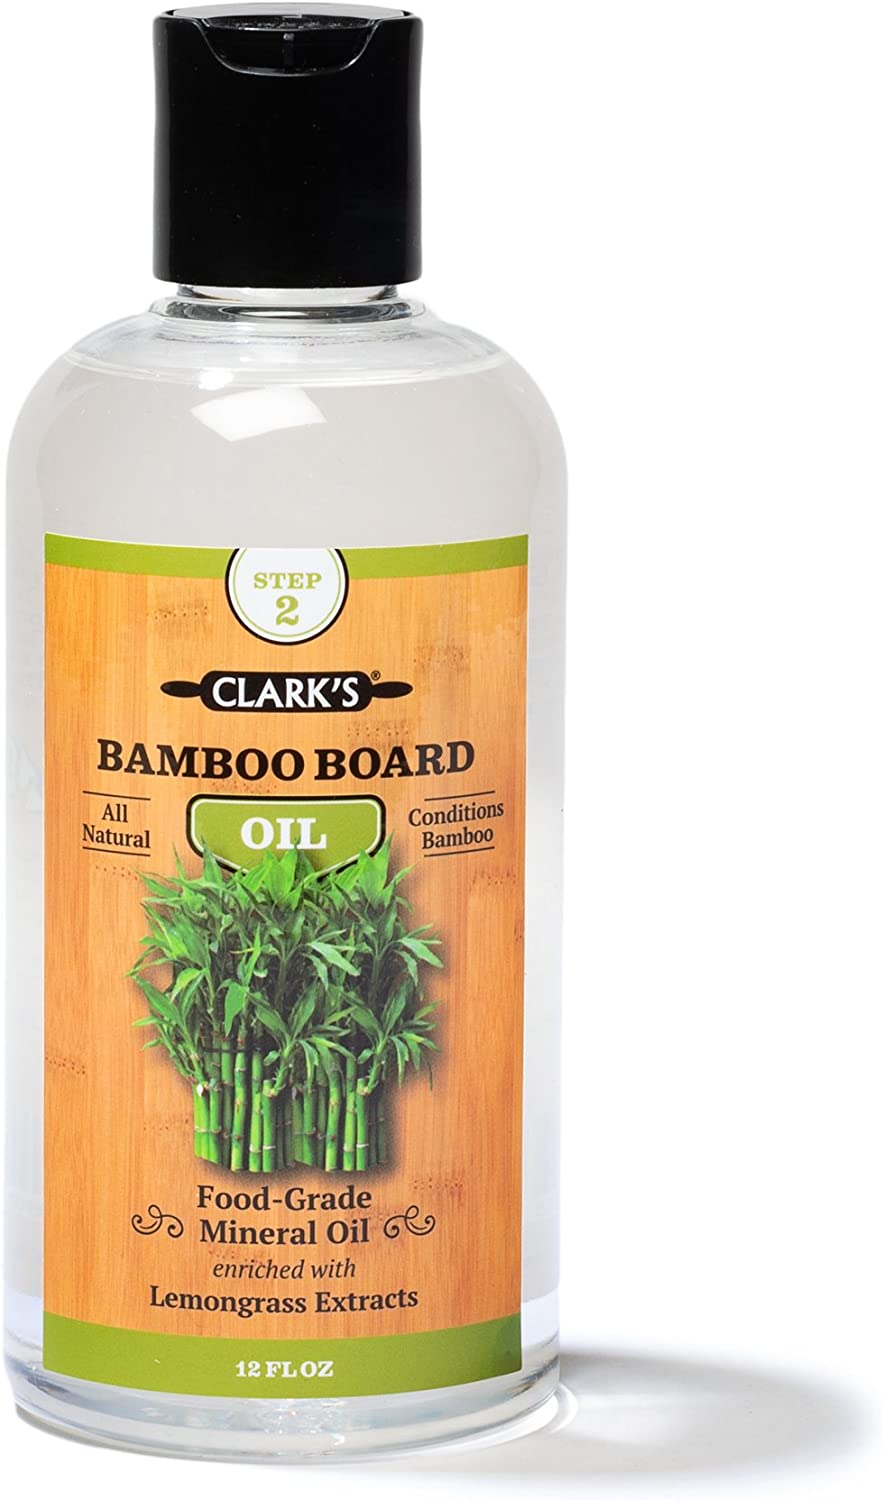 Bamboo Board Oil (12oz) by CLARK'S | Enriched with Lemongrass Extract | Specially Formulated for Bamboo Cutting Boards and all things Bamboo